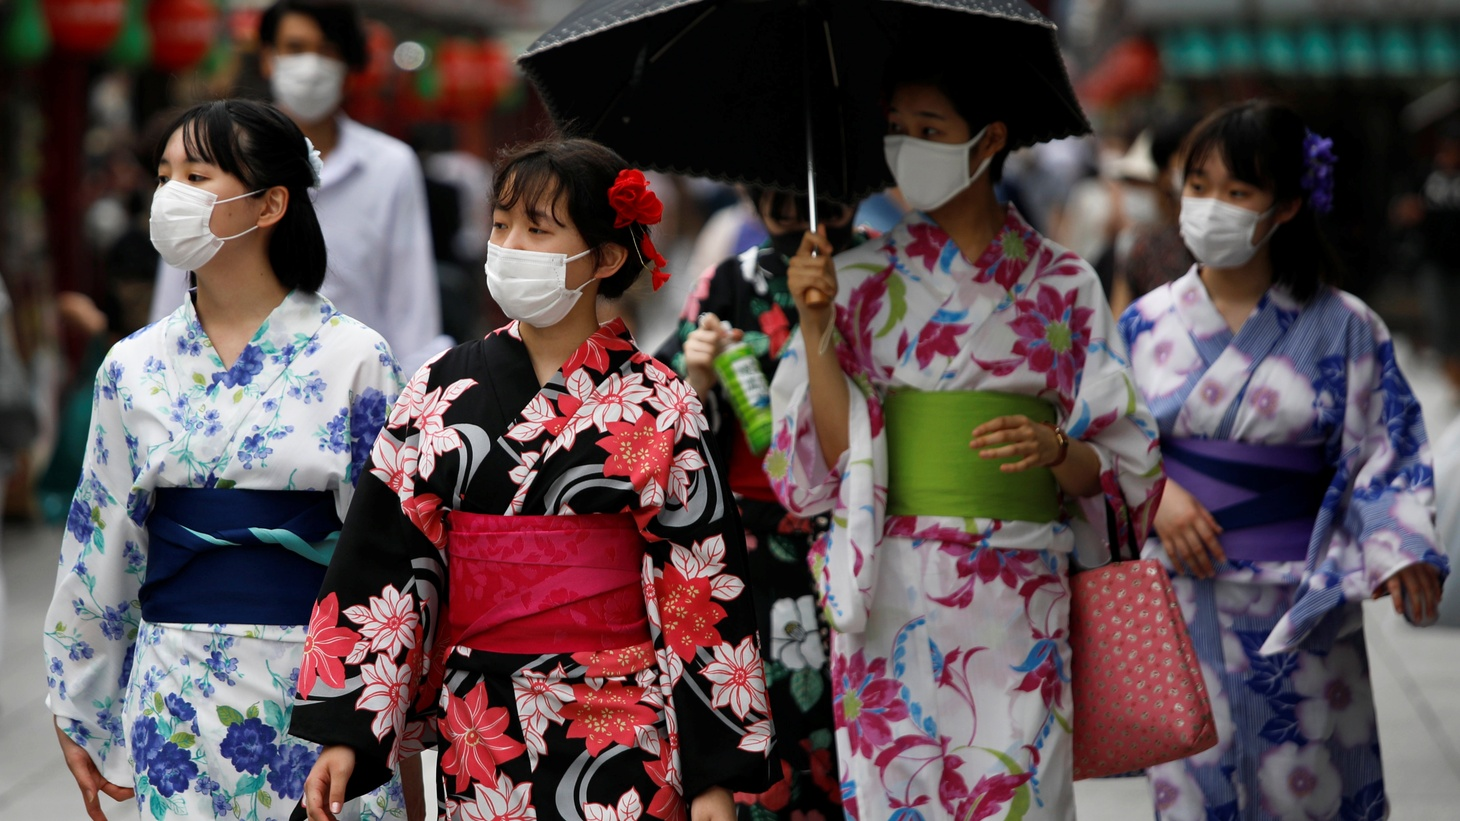 Women wear protective face masks as they walk along Nakamise Street at Asakusa district amid the coronavirus disease (COVID-19) outbreak in Tokyo, Japan, July 22, 2020.